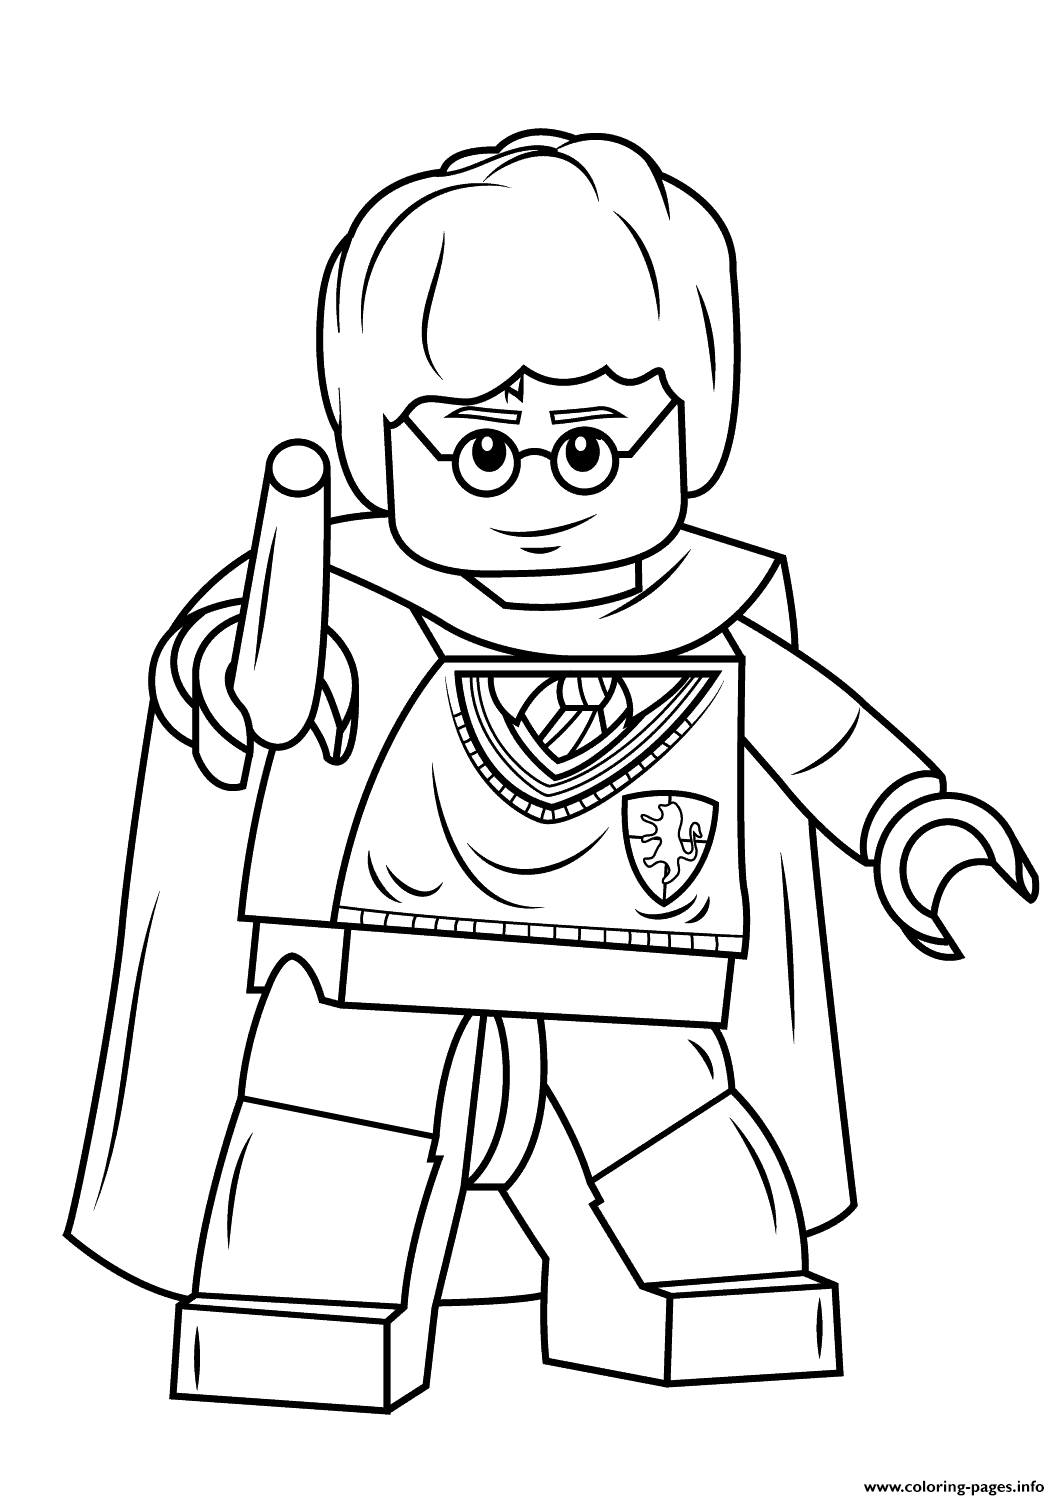 Print Lego Harry Potter With Wand Coloring Pages Alexander S